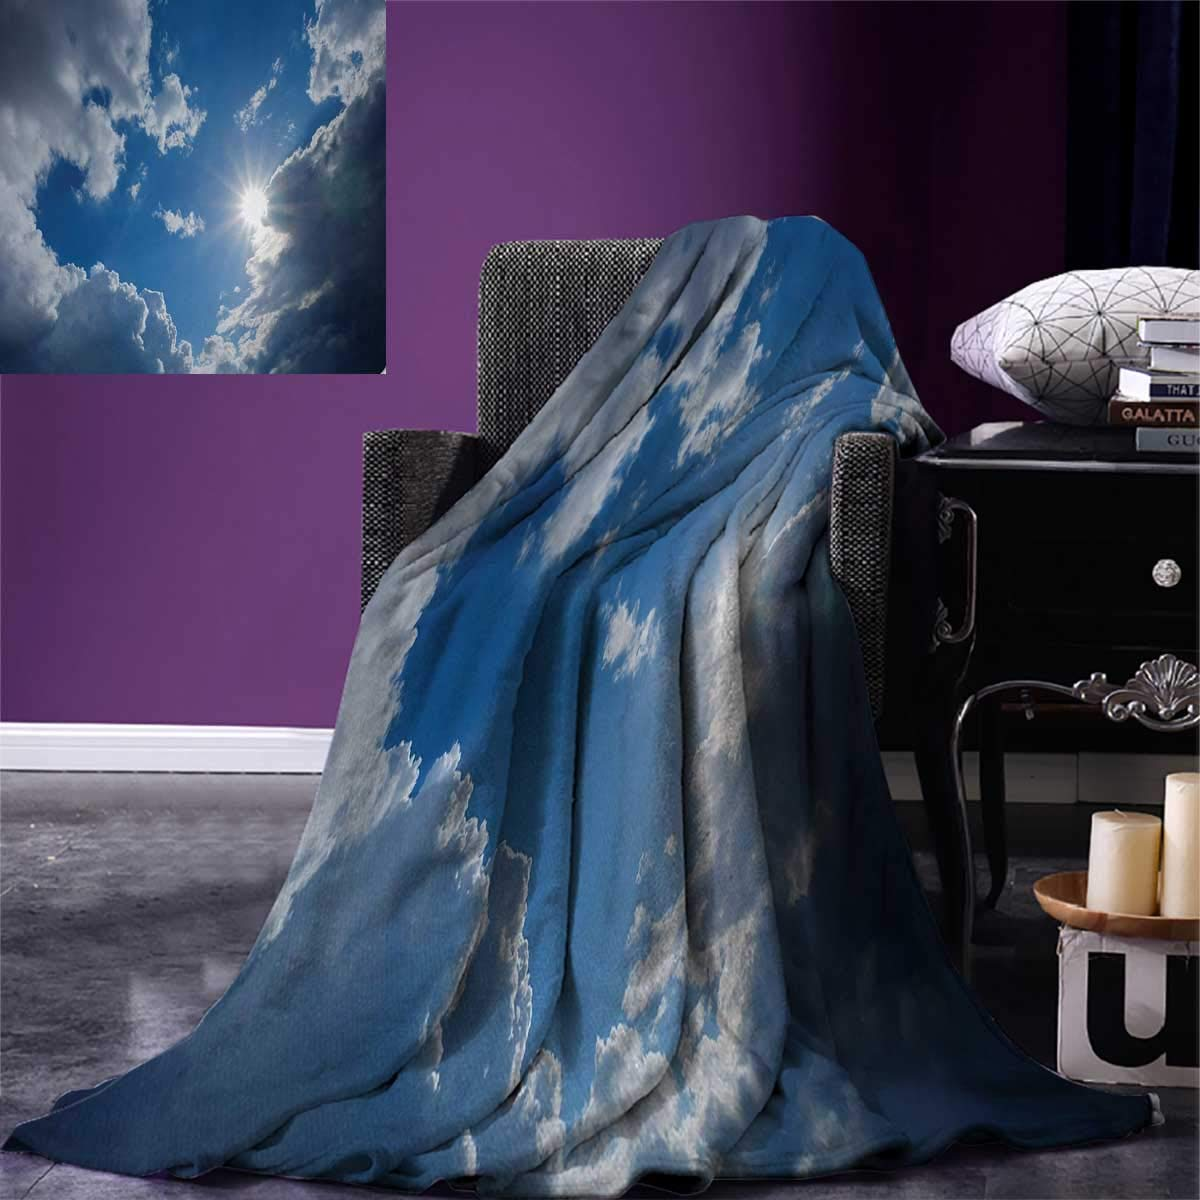 Landscape Digital Printing Blanket Clear Weather Vivid Vibrant Sun On Sky with Clouds Solar of Clean Energy Power Art Summer Quilt Comforter 80''x60'' Gray Blue